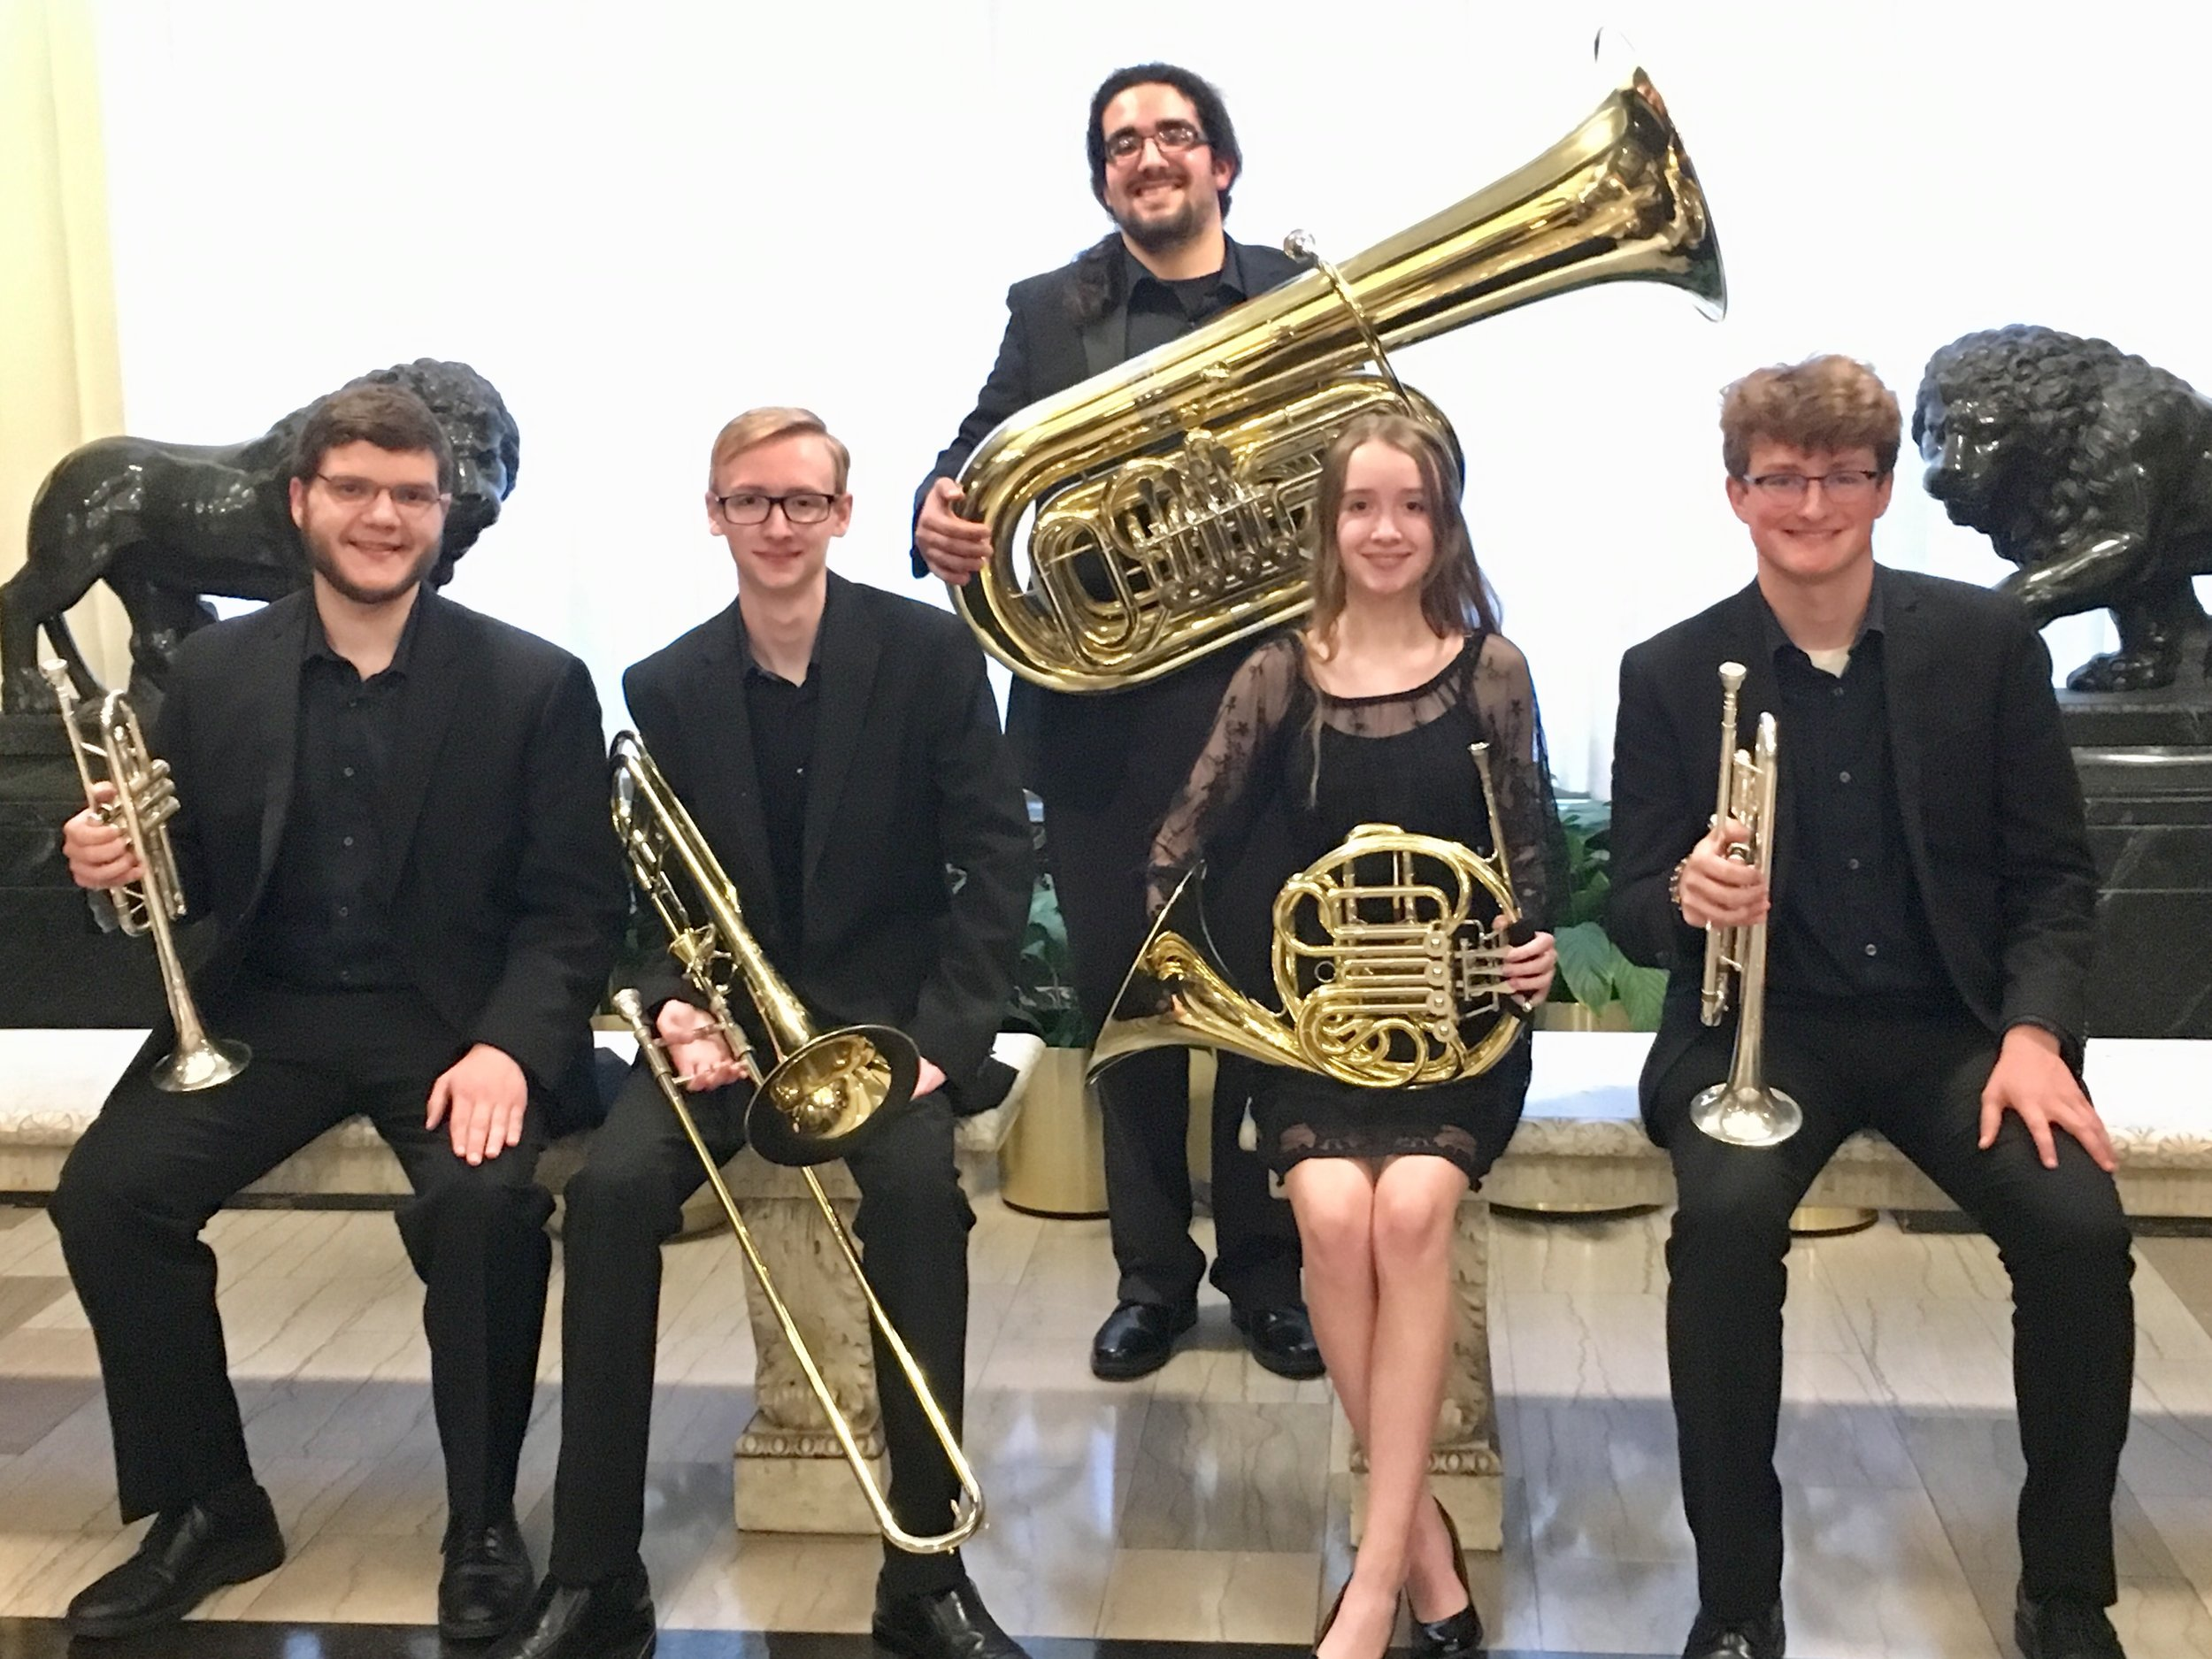 Jay Leno @ Pittsburgh Speaker Series - Wednesday, April 24, 2019The Monaloh Brass - Joel, Lukas, Connor, Lea, and Aiden - performed in the Heinz Hall lobby before a sold-out lecture by former Tonight Show host Jay Leno, in the UPMC Robert Morris Pittsburgh Speaker Series.